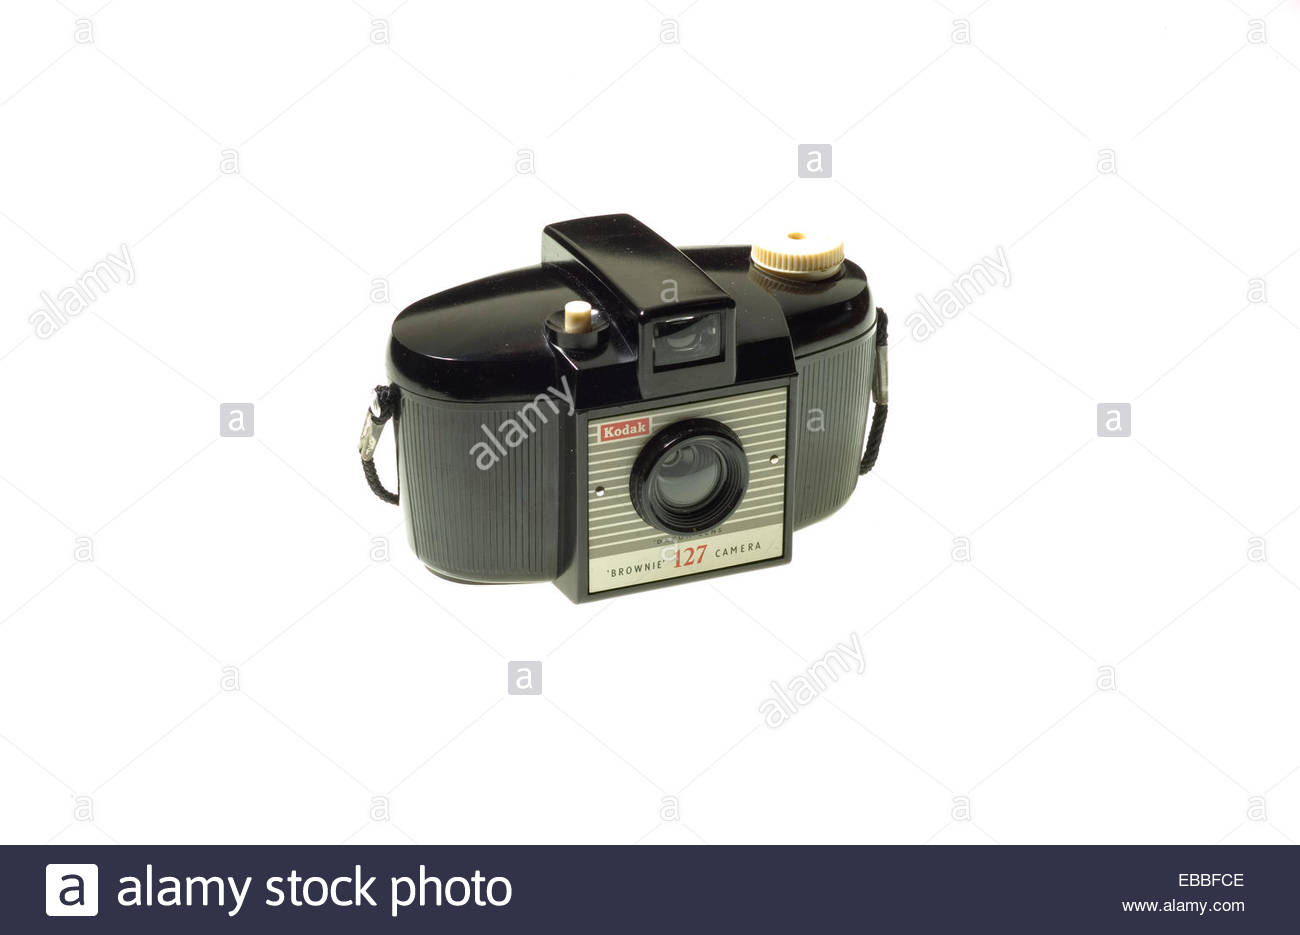 A Kodak 'Brownie 127' camera from the 1950's. - Stock Image